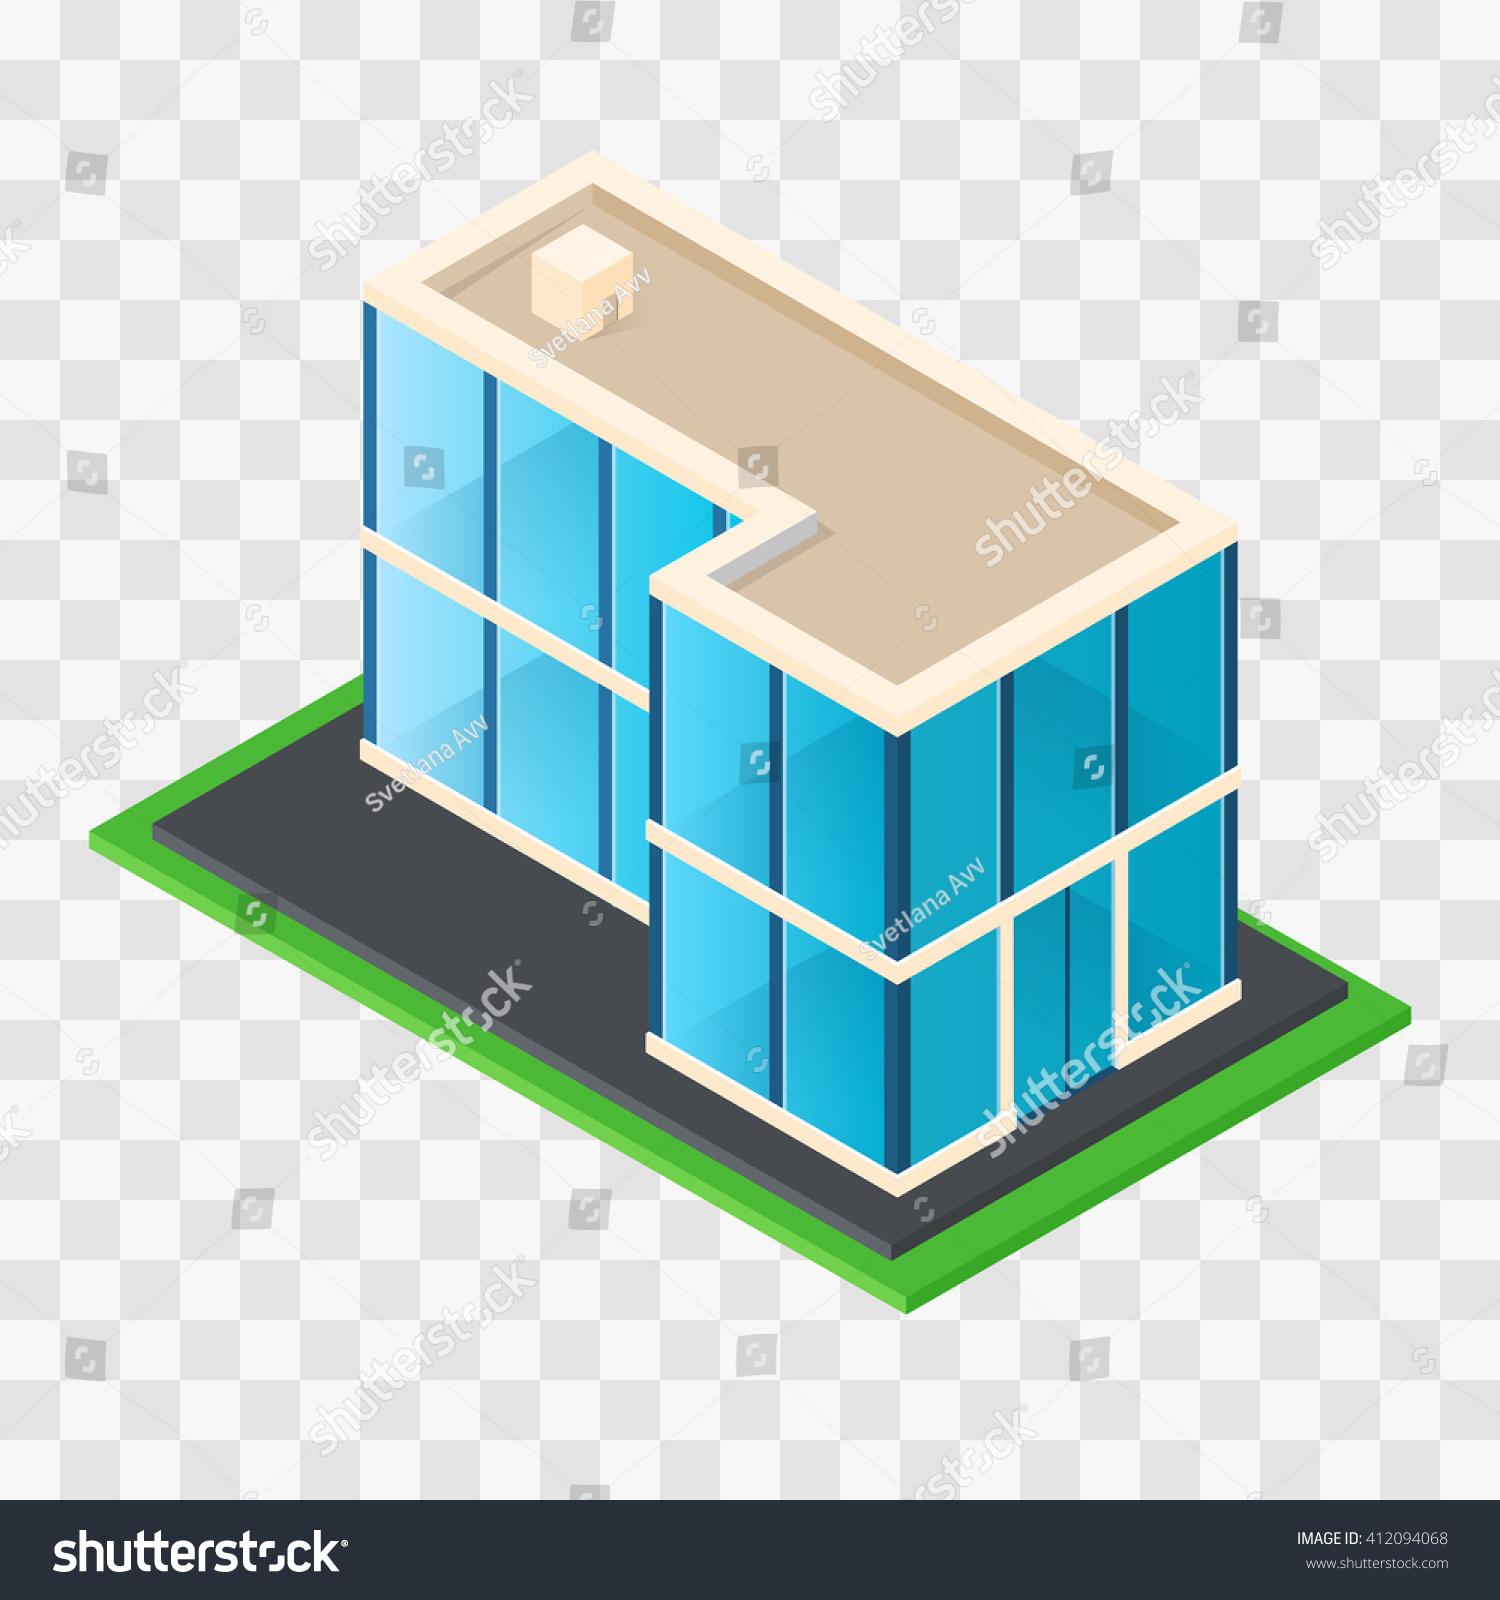 Isometric chic modern rustic cottage glass stock vector for Building a dog kennel business